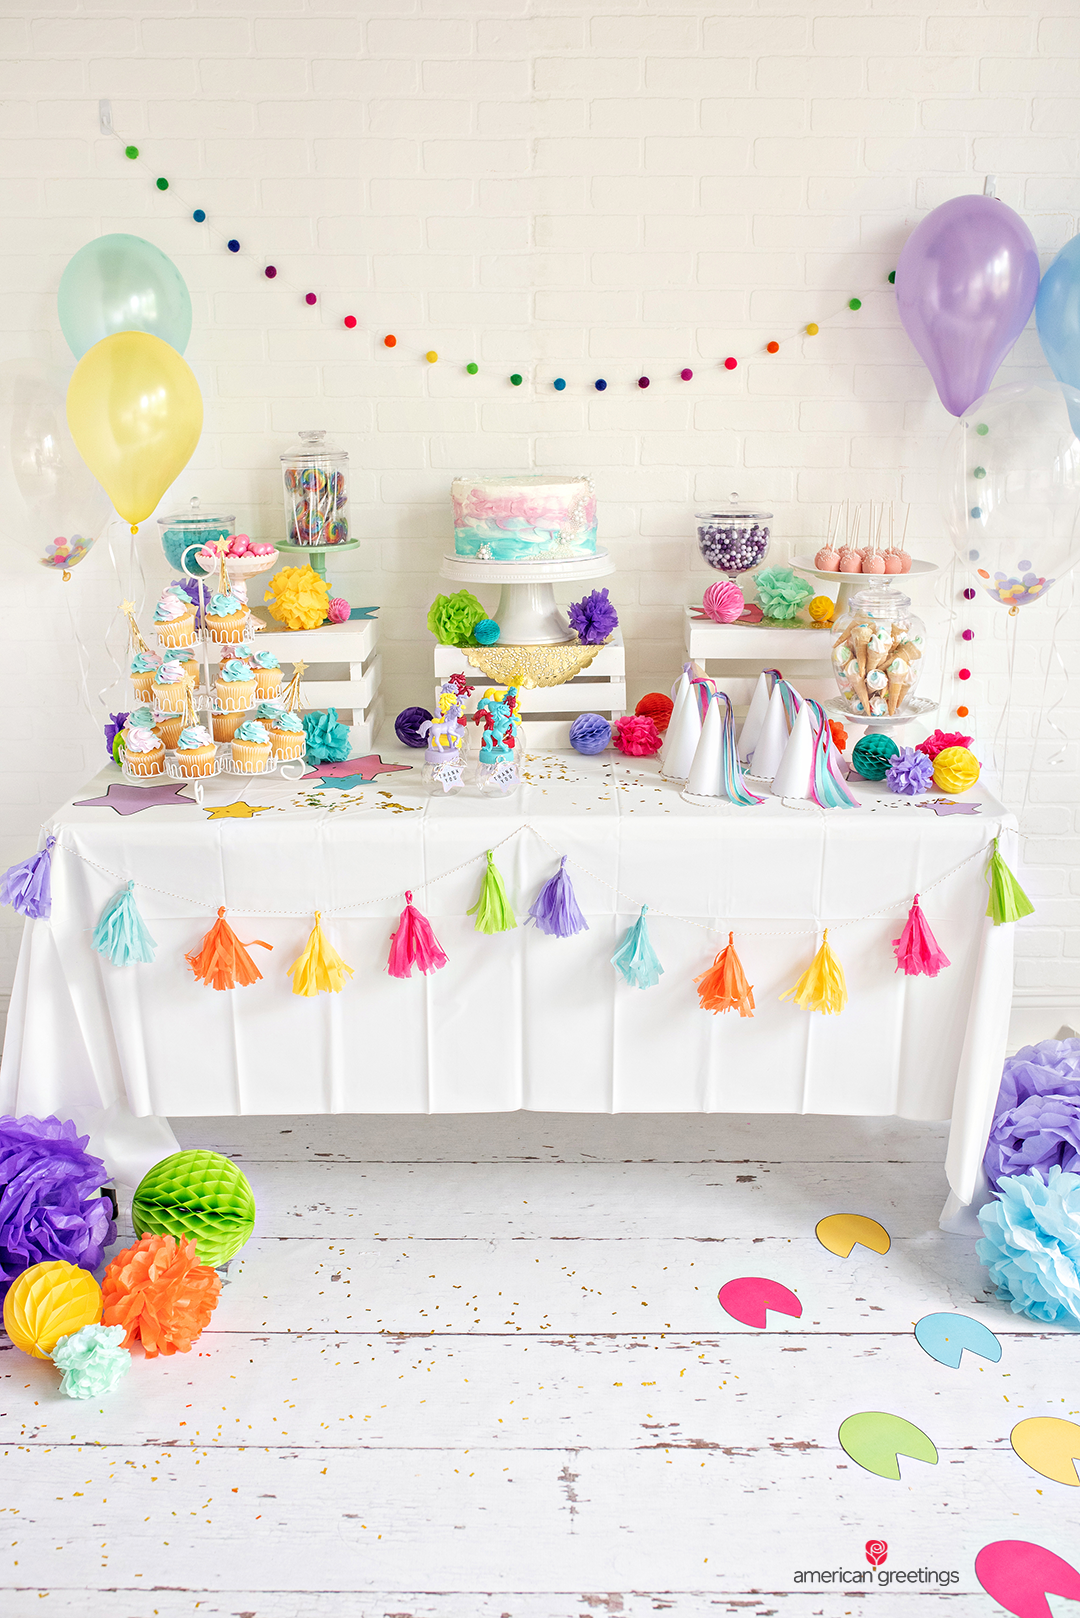 White Food Table decorated with a white tablecloth, tissue papper tassels and confetti-balloons with cupcakes, pink cake pops, gumballs and lollipops.